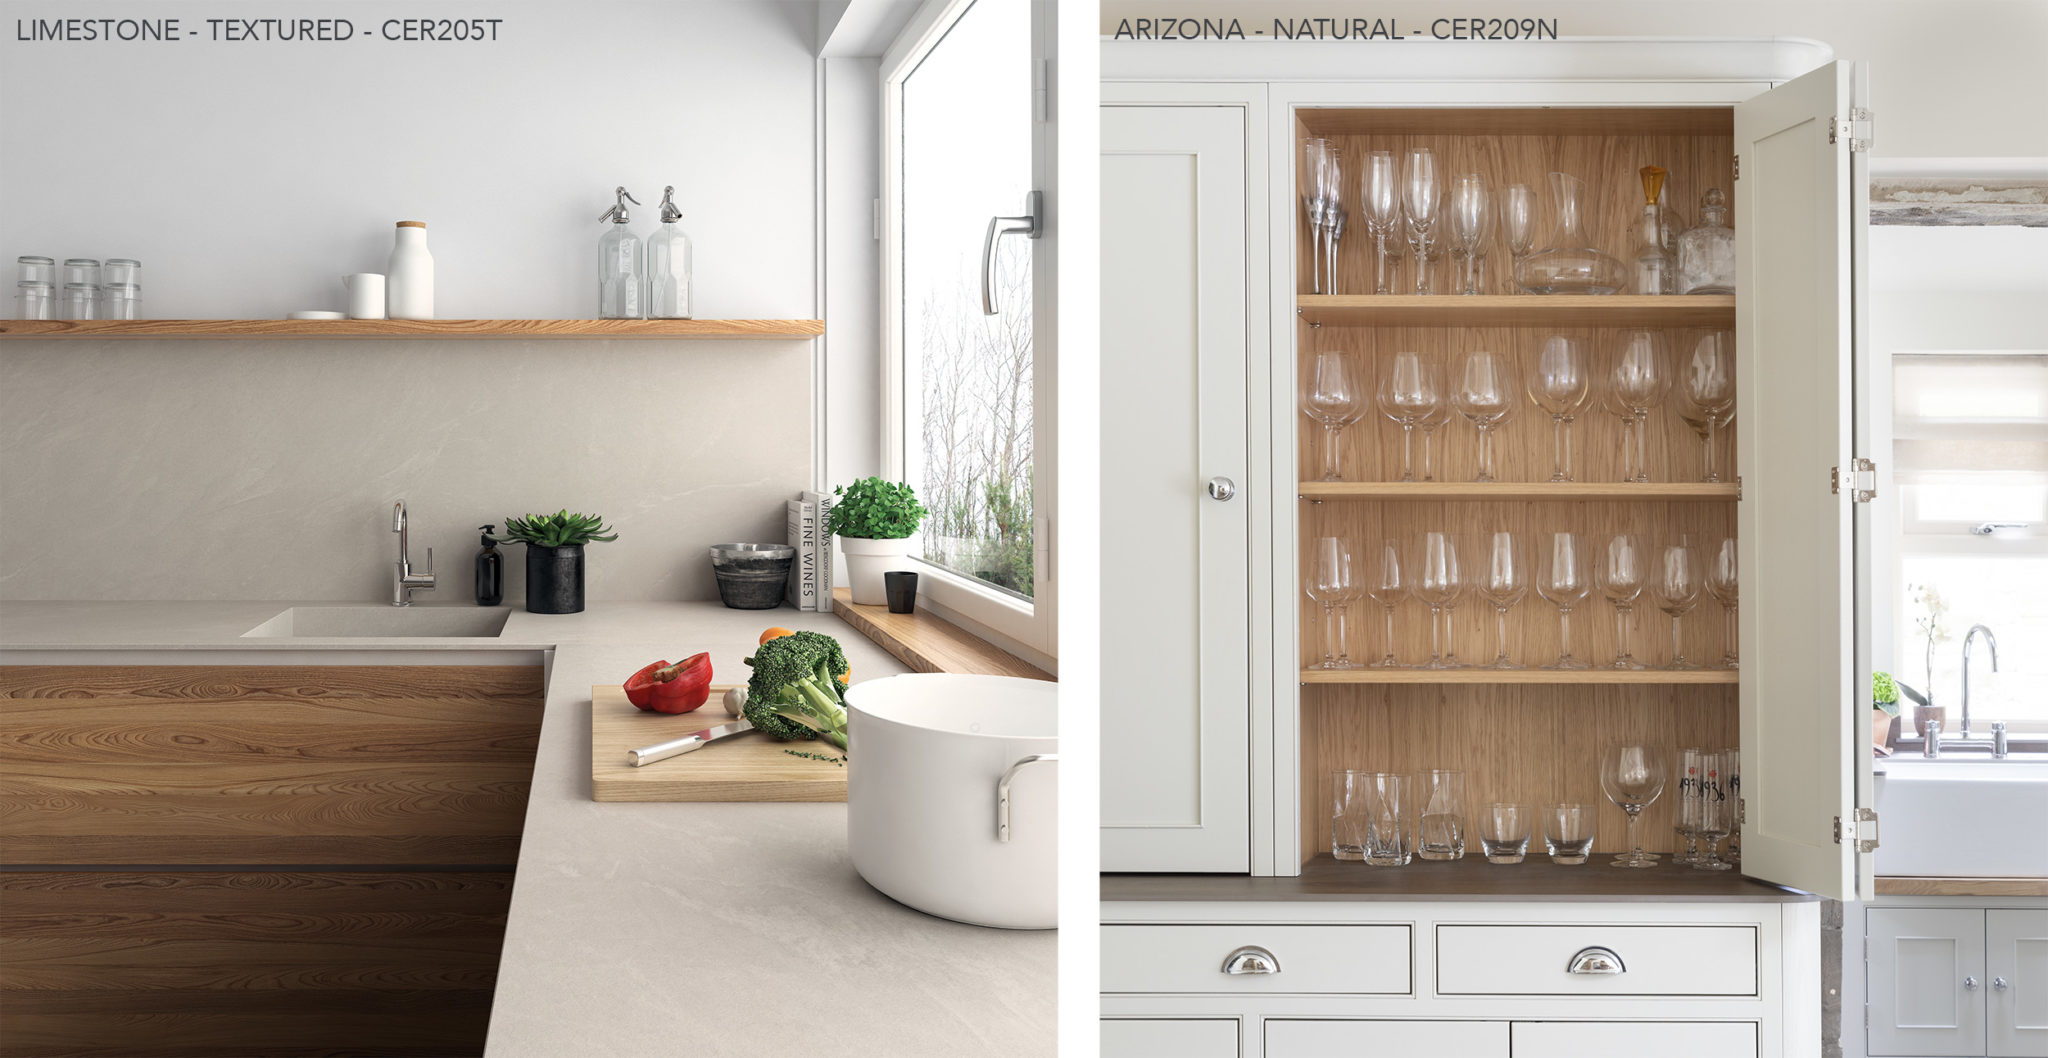 kitchens with Ceralsio Limestonw and Aruziba worktops